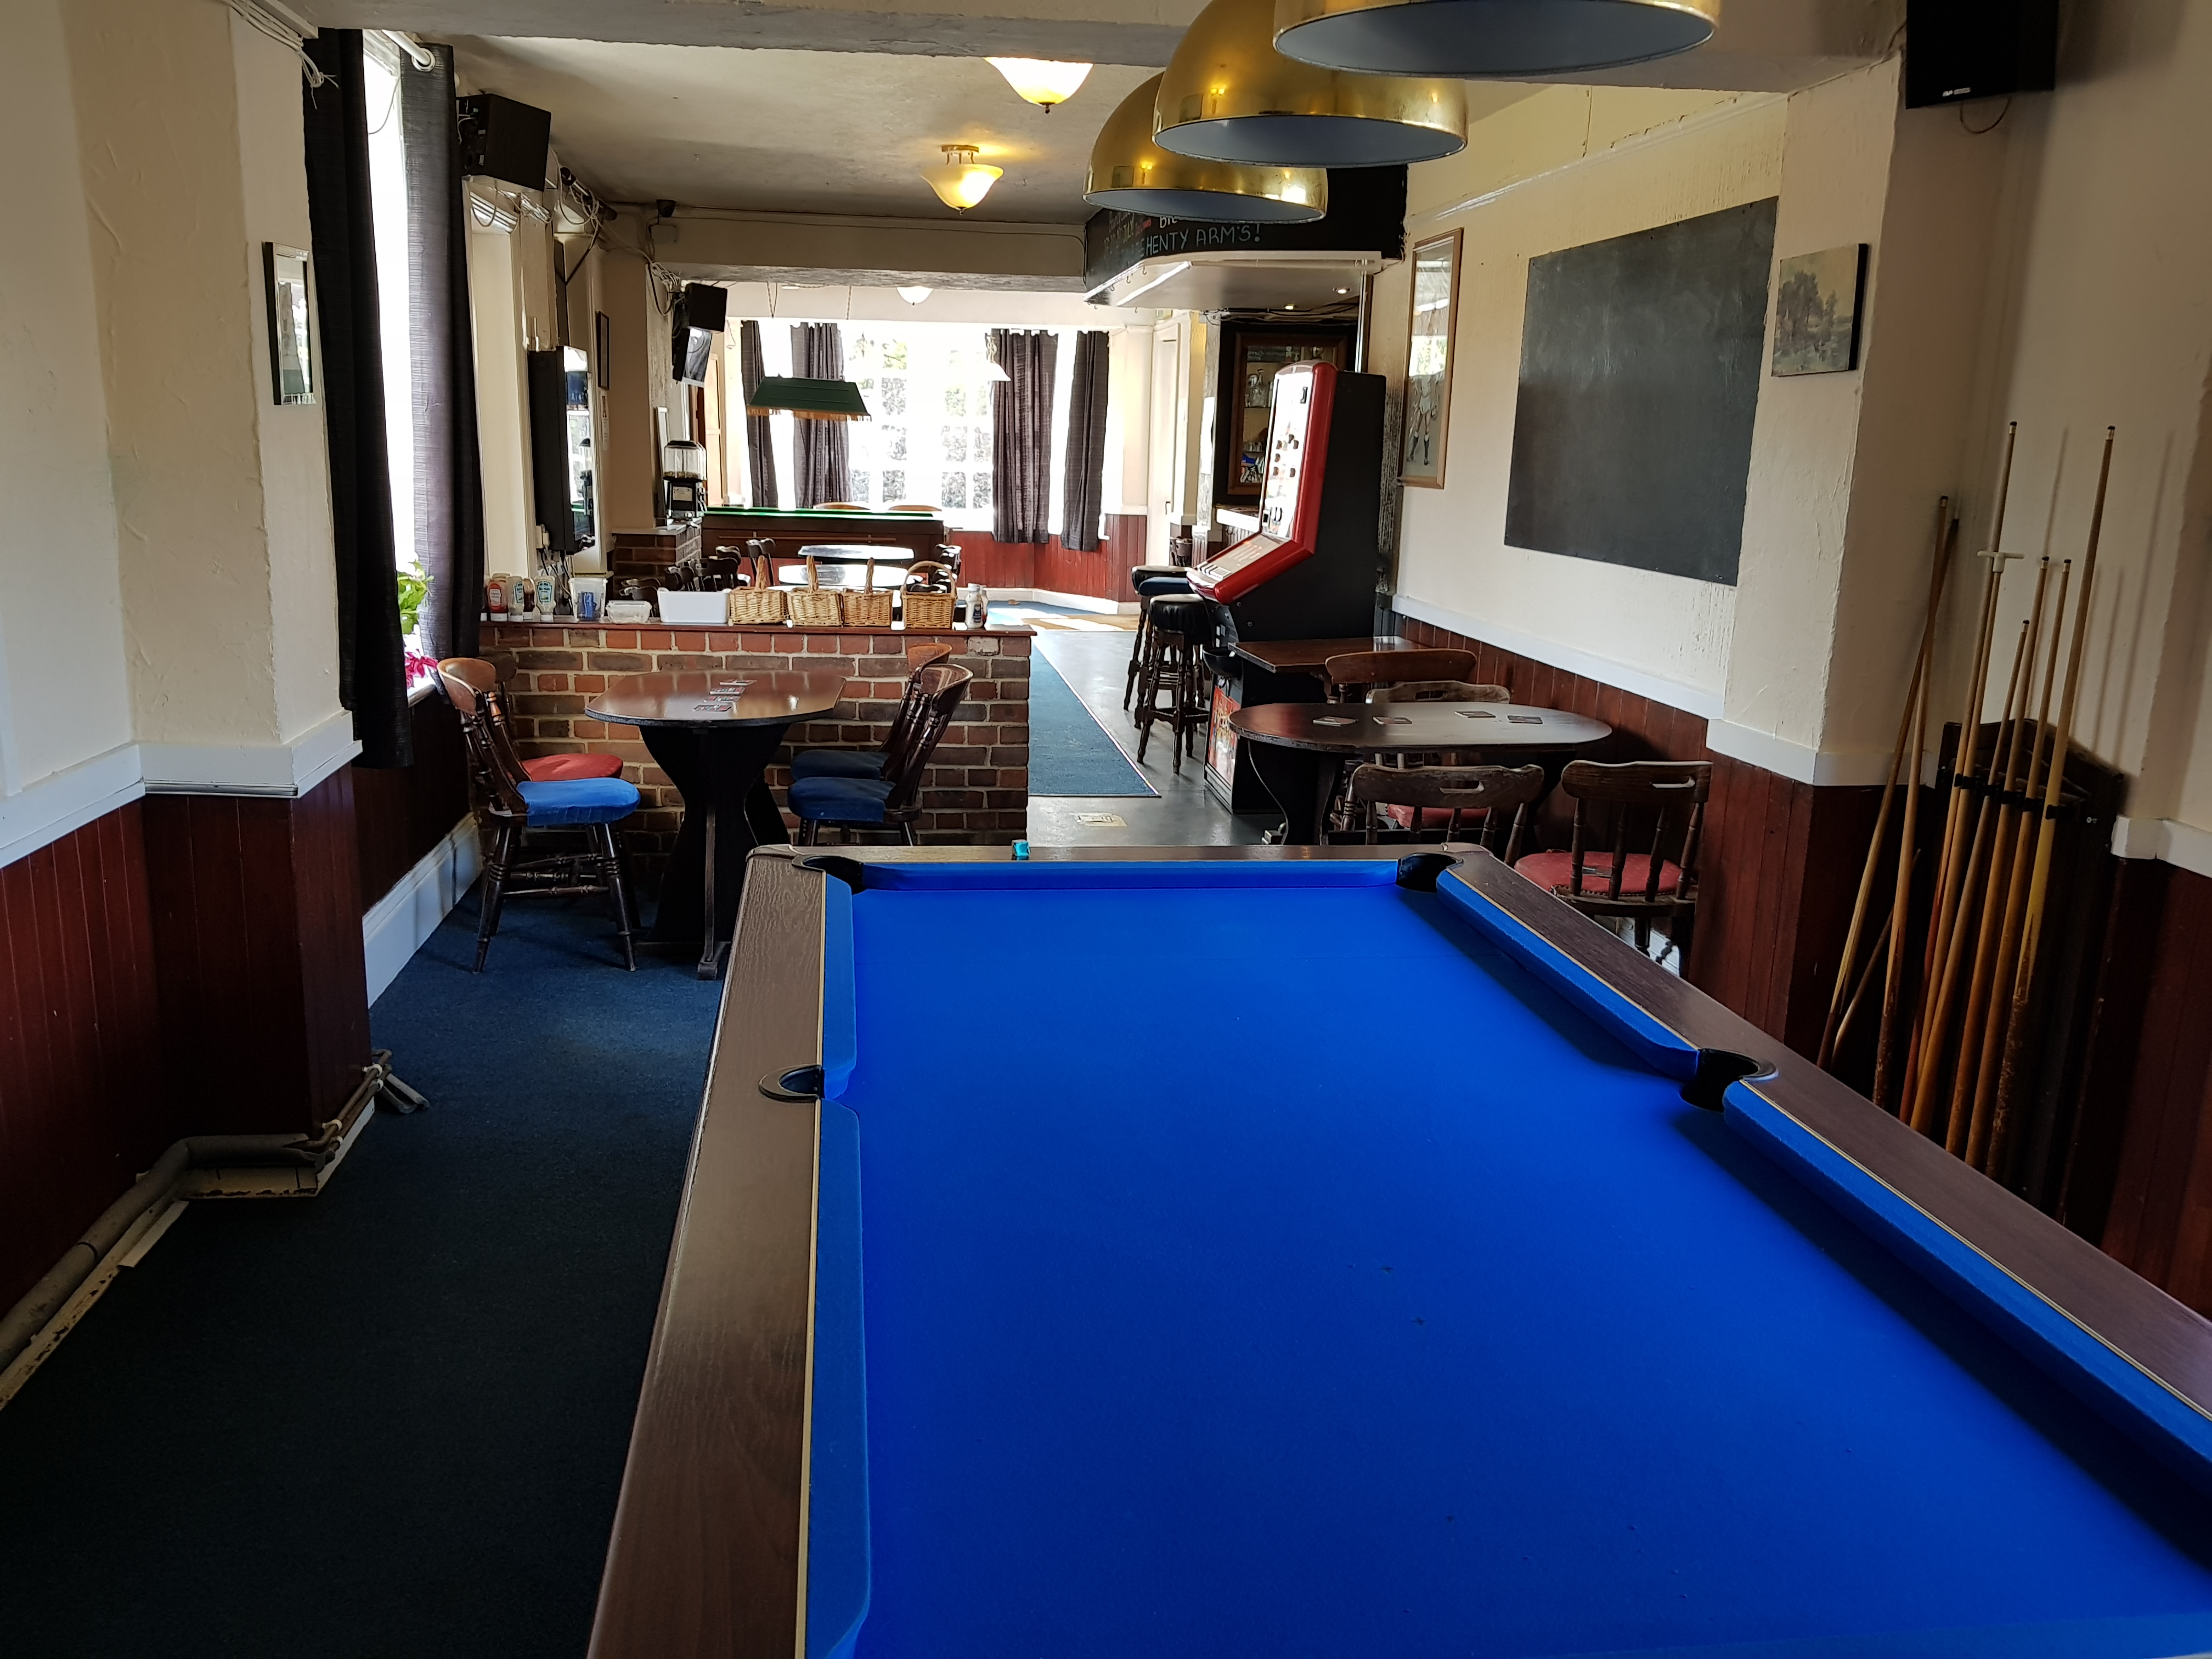 Another Pool Table